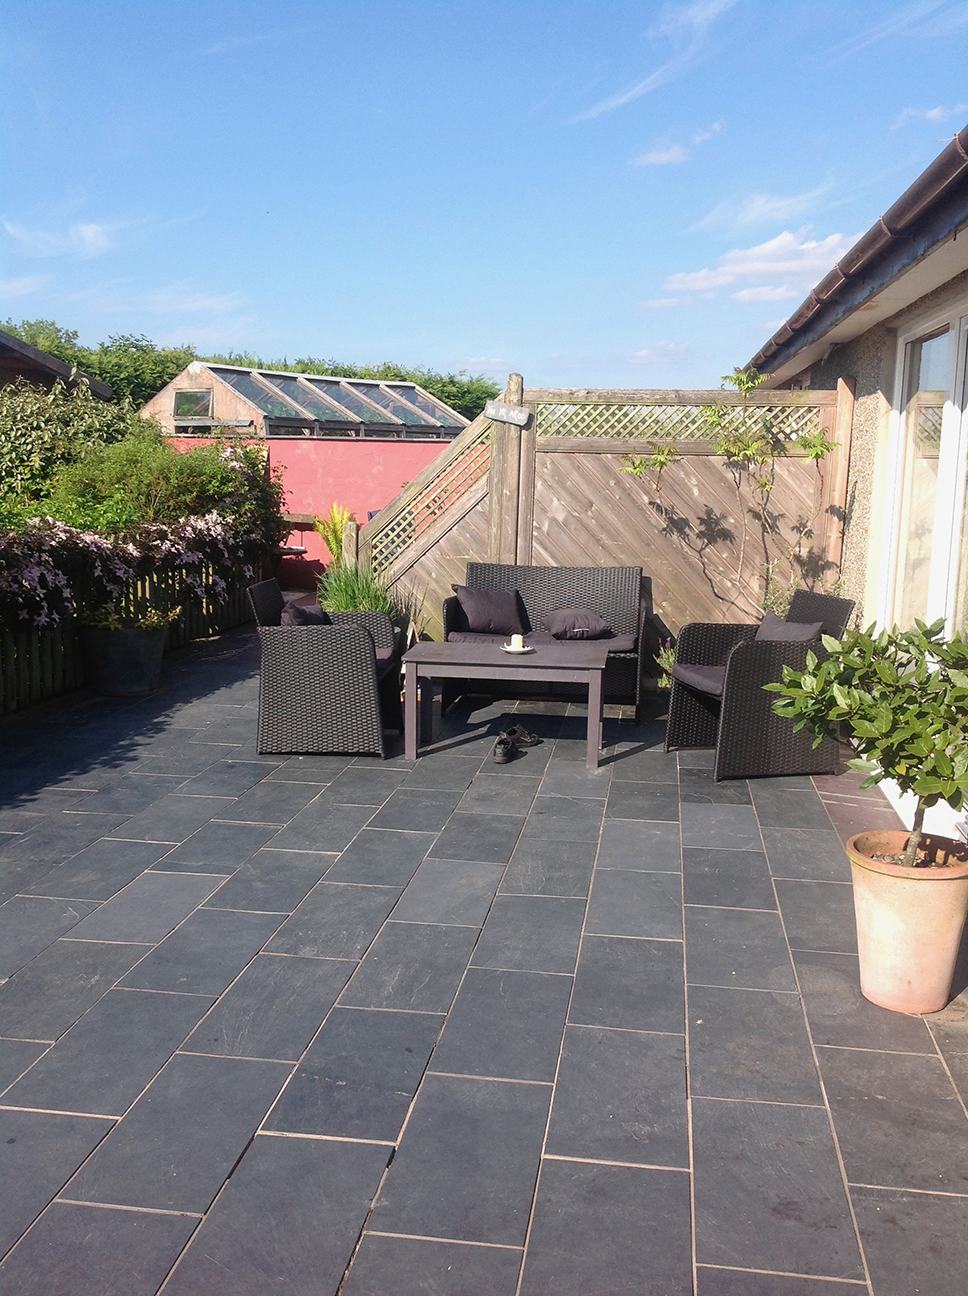 LLDSlate-Slate-Paving-Slabs-garden.jpg